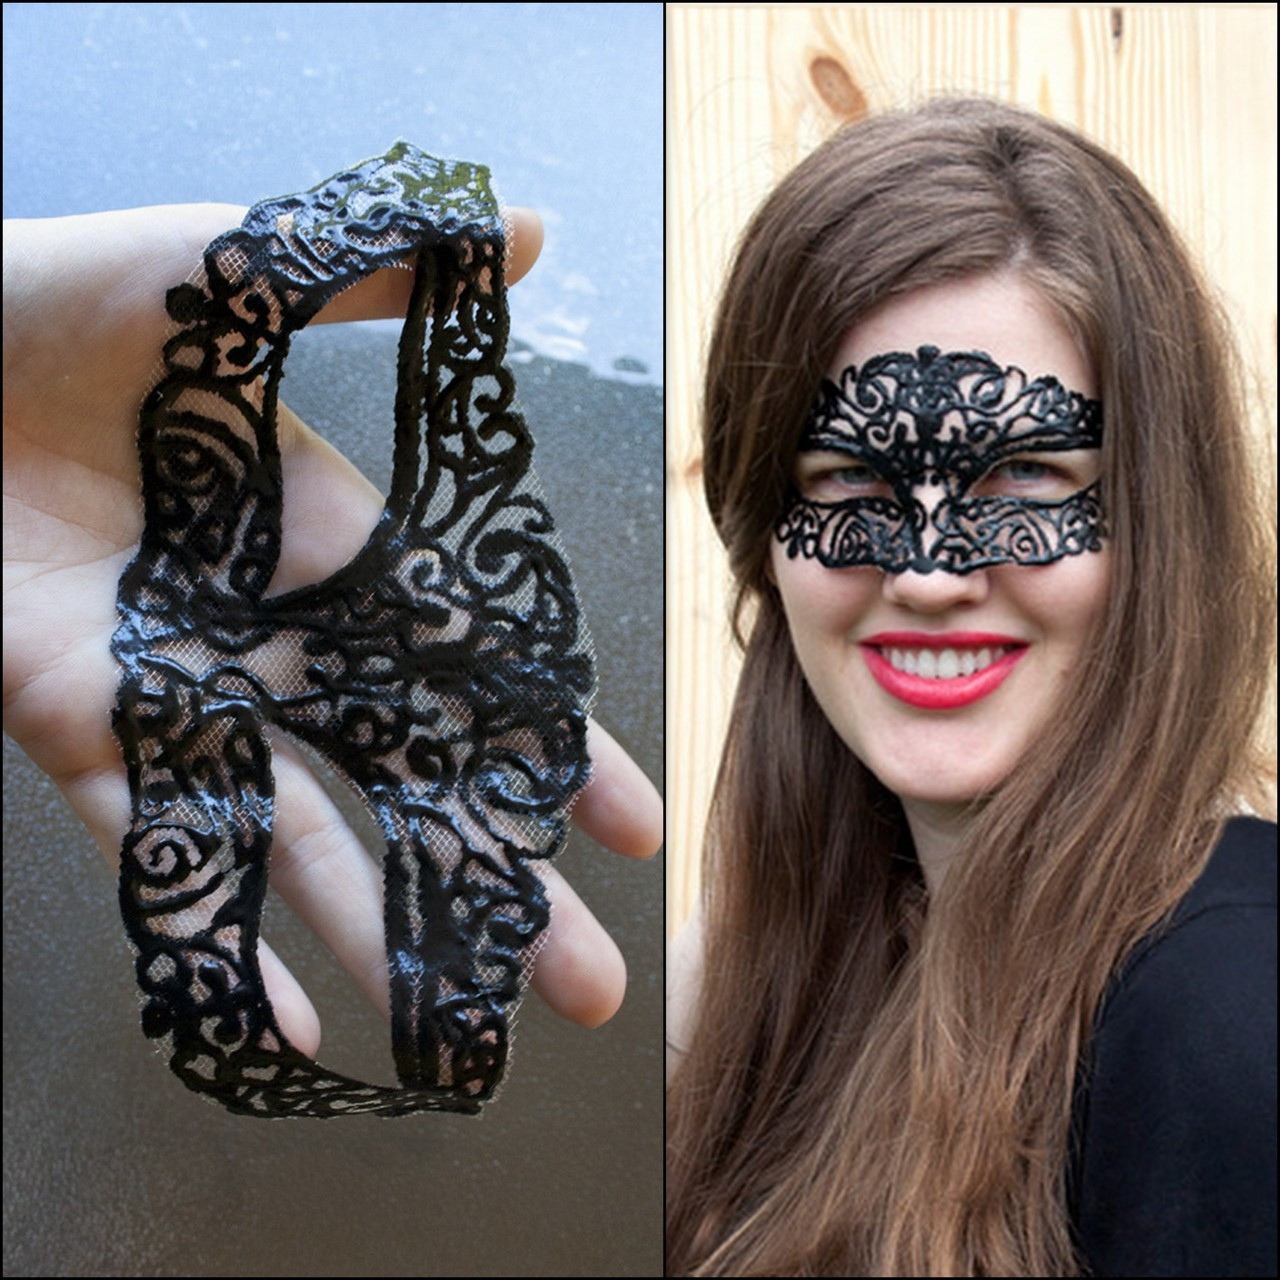 Best ideas about DIY Lace Mask . Save or Pin True Blue Me & You DIYs for Creatives • DIY Masquerade Now.